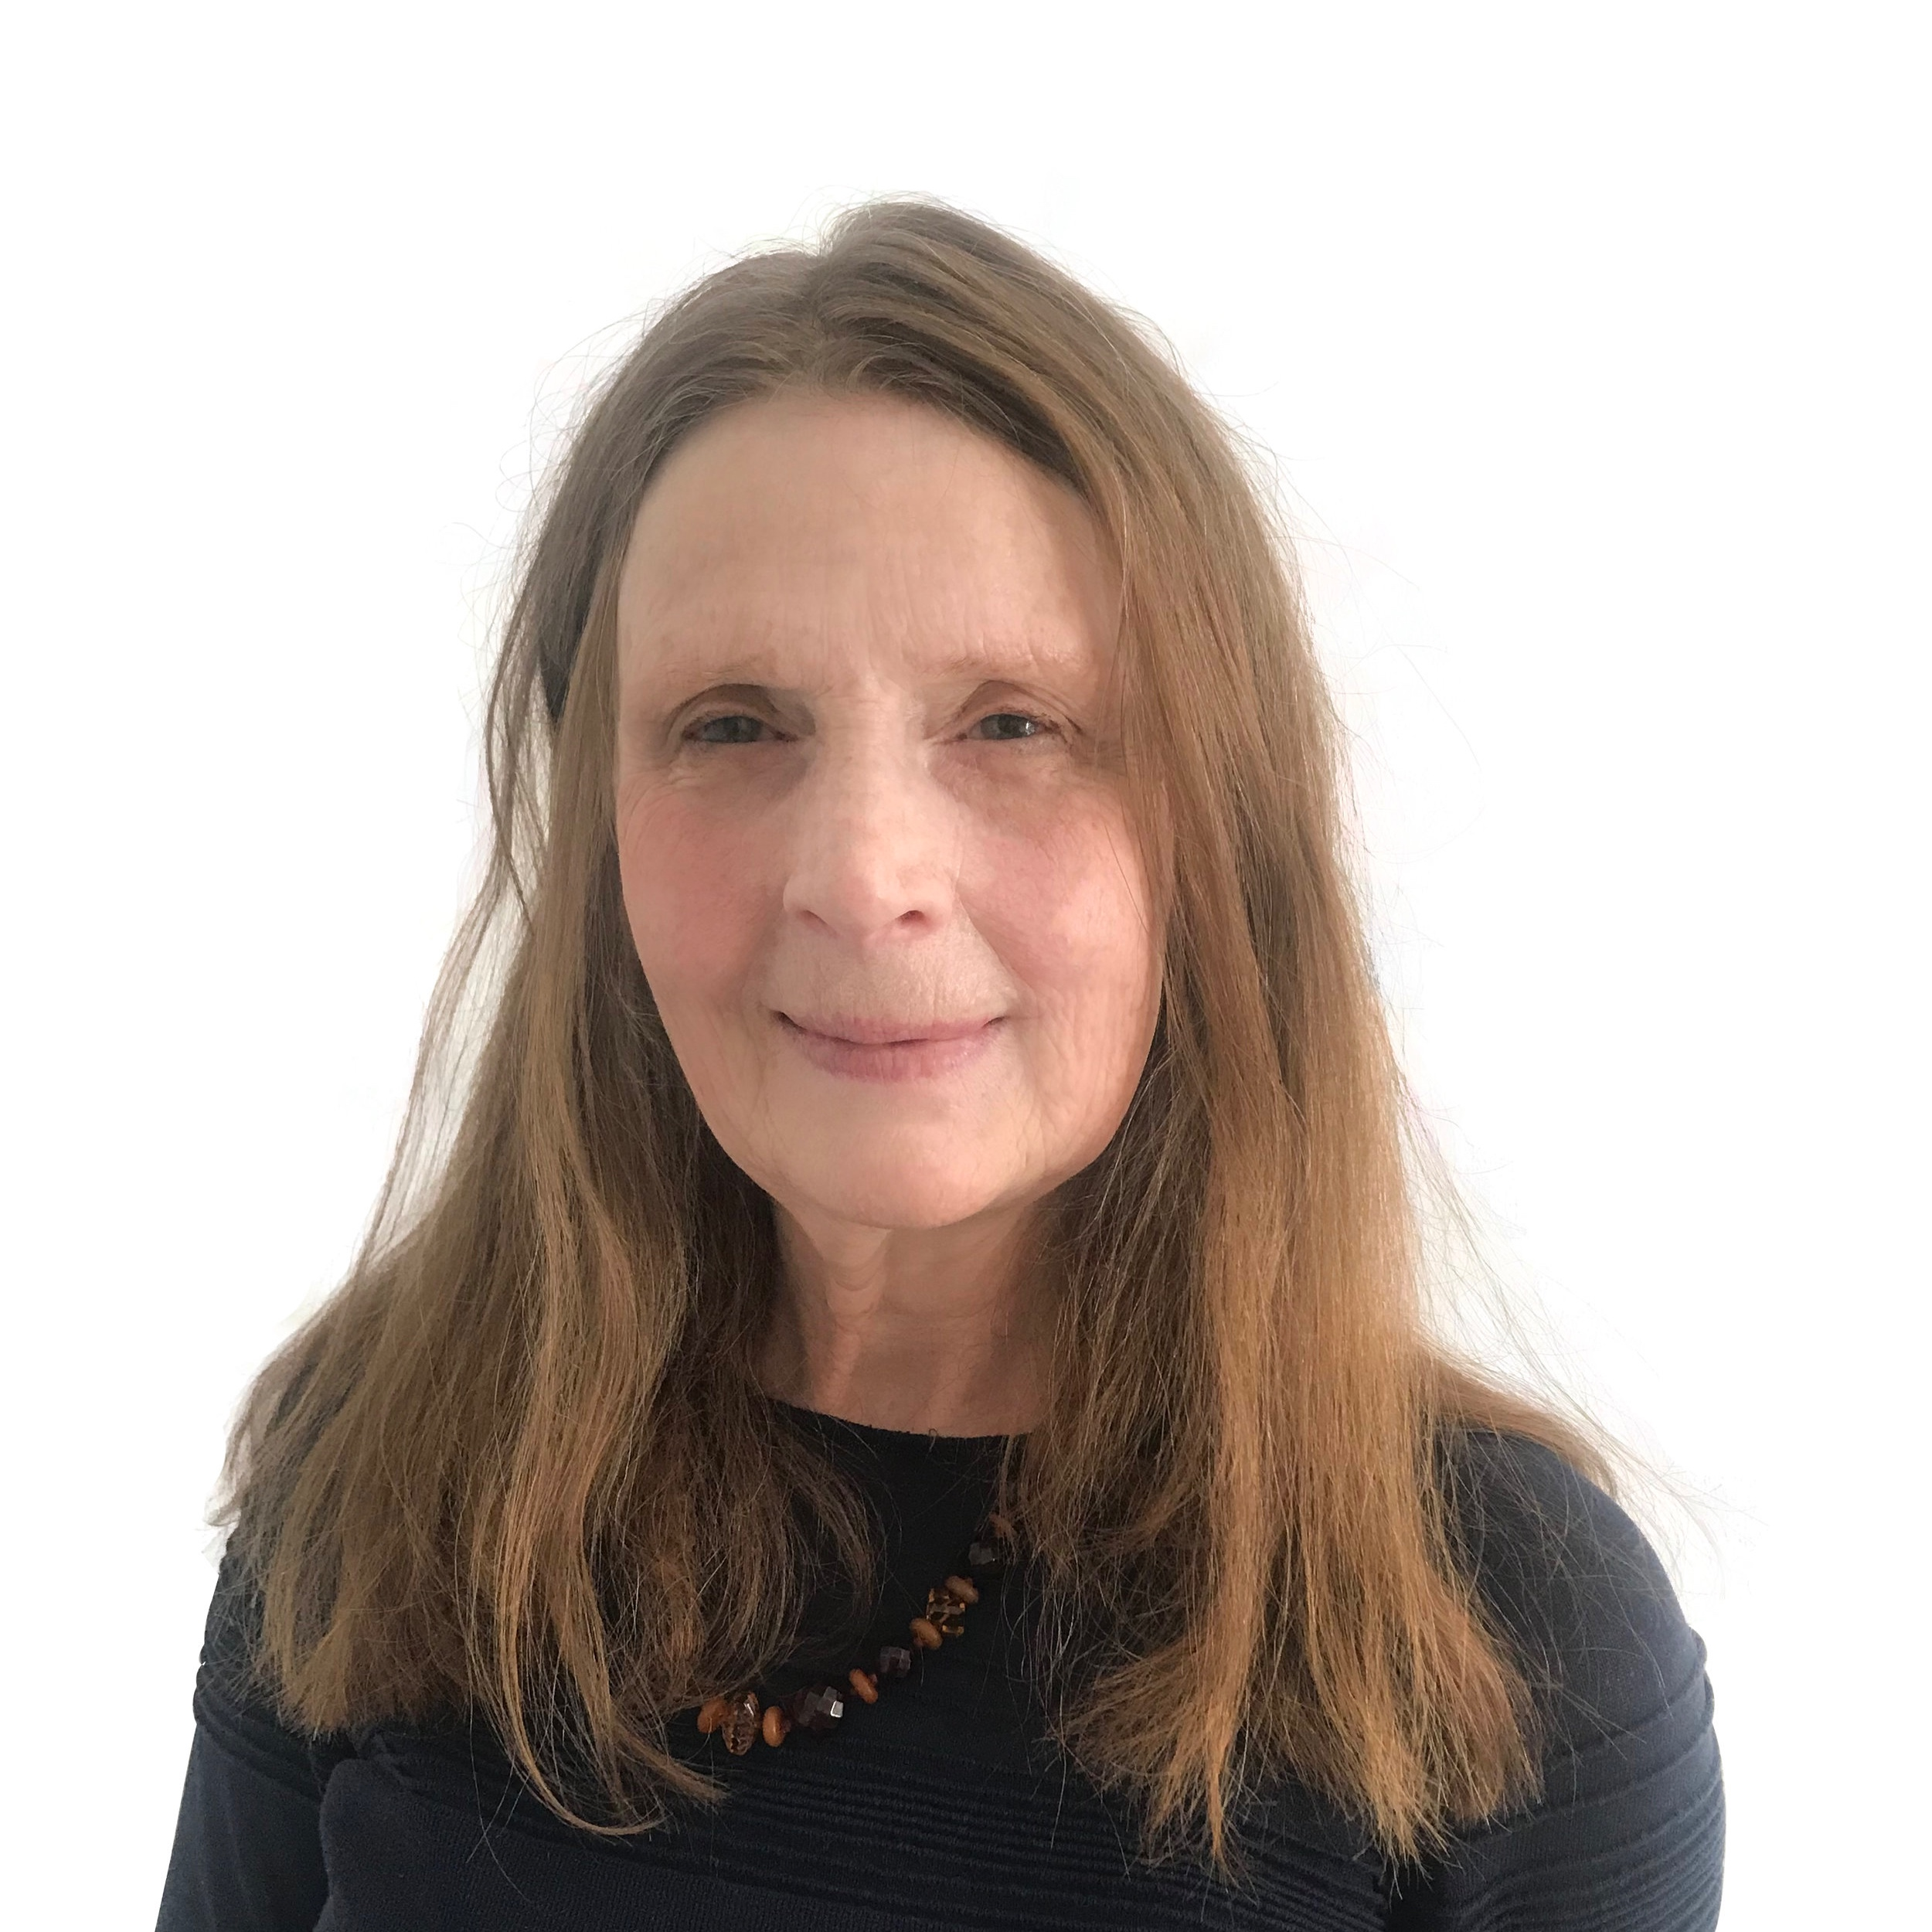 Margaret Evans - AcupunctureHerbal MedicineTraditional Chinese MedicineTo contact Margaret or book an appointment please ring or text 07958 751898Consultation Fee £90.00Registered with BAcC, RCHM